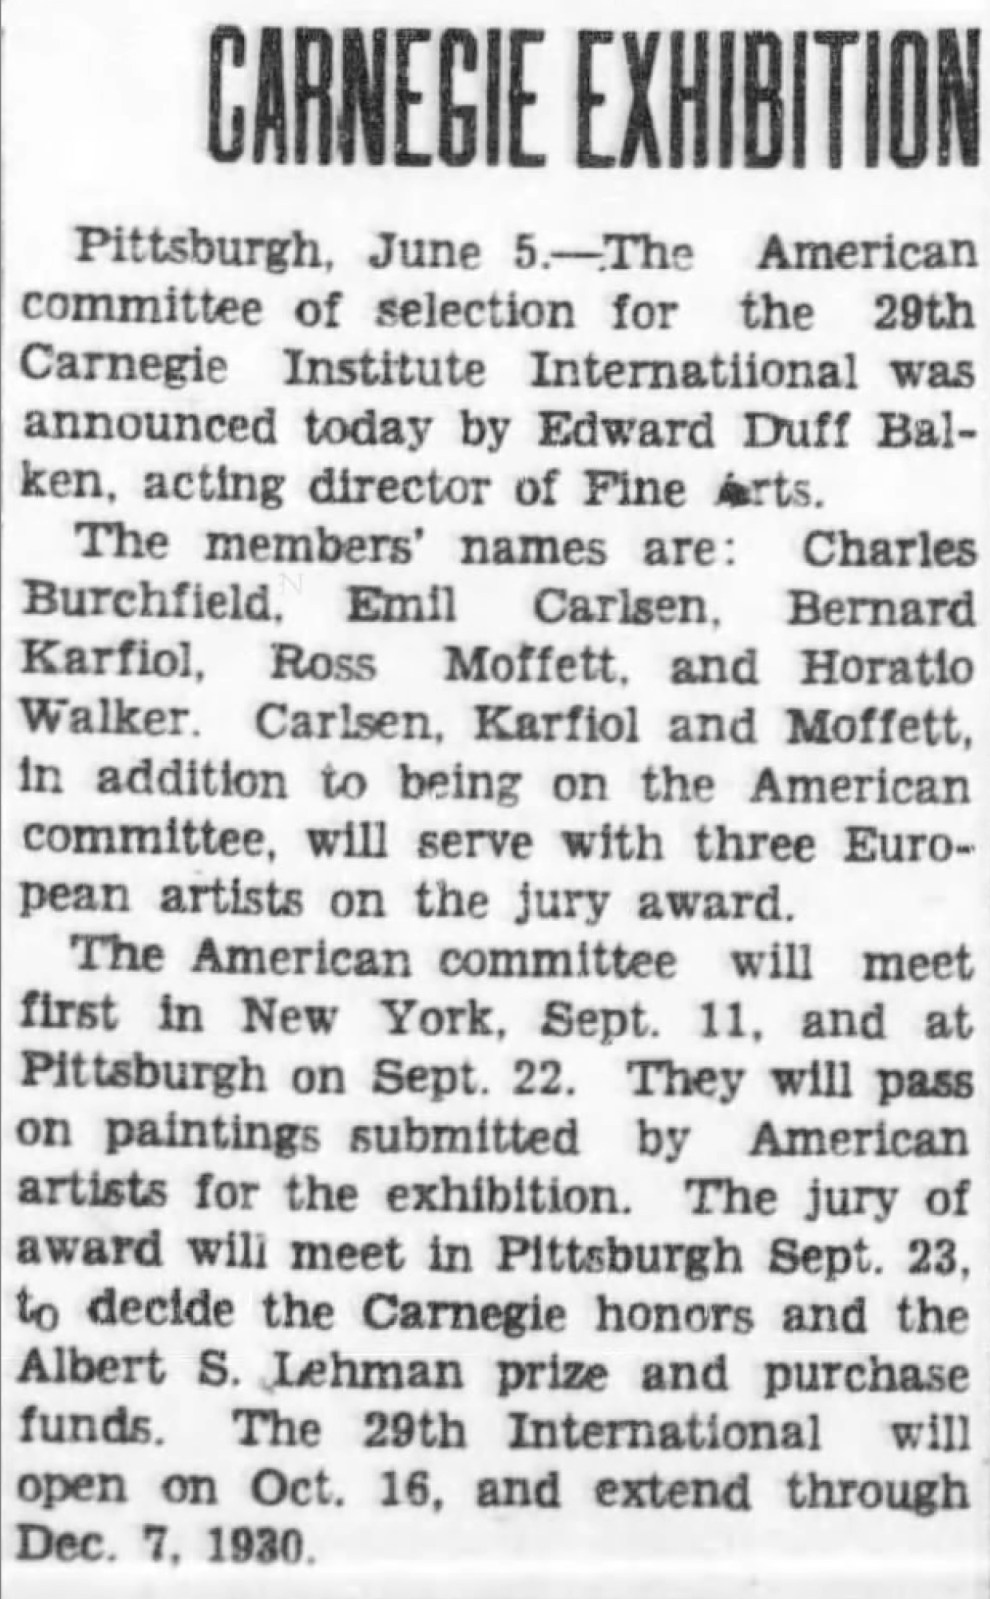 "Pittston Gazette, Pittston, PA, ""Carnegie exhibition"", Thursday, June 5, 1930, page 2, no illustration."